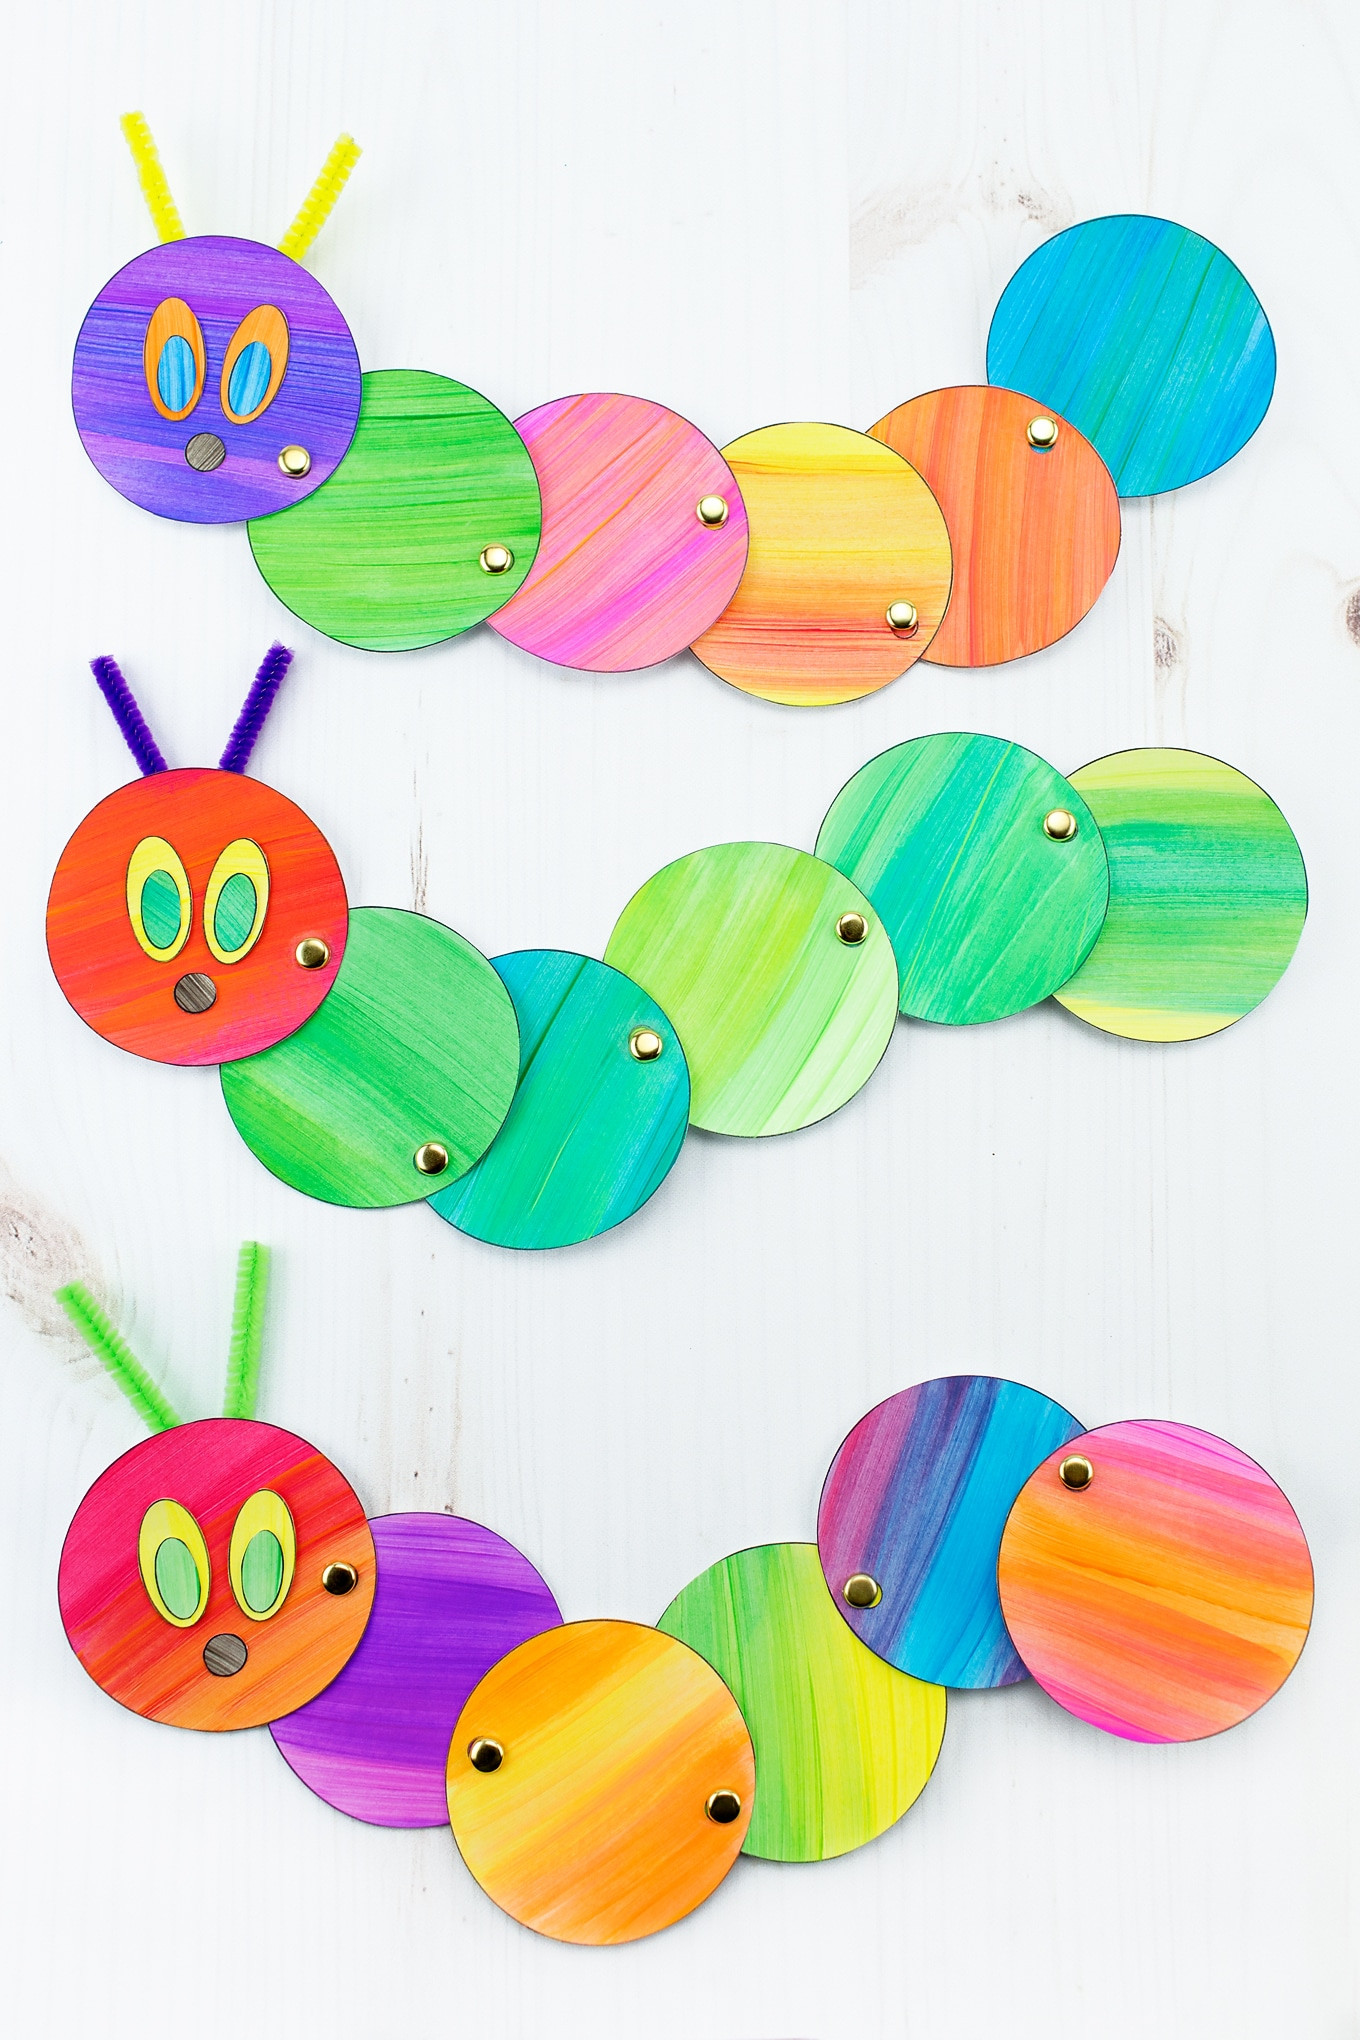 Best ideas about Easy Craft Projects For Kids . Save or Pin How to Make an Easy and Fun Wiggling Caterpillar Craft Now.